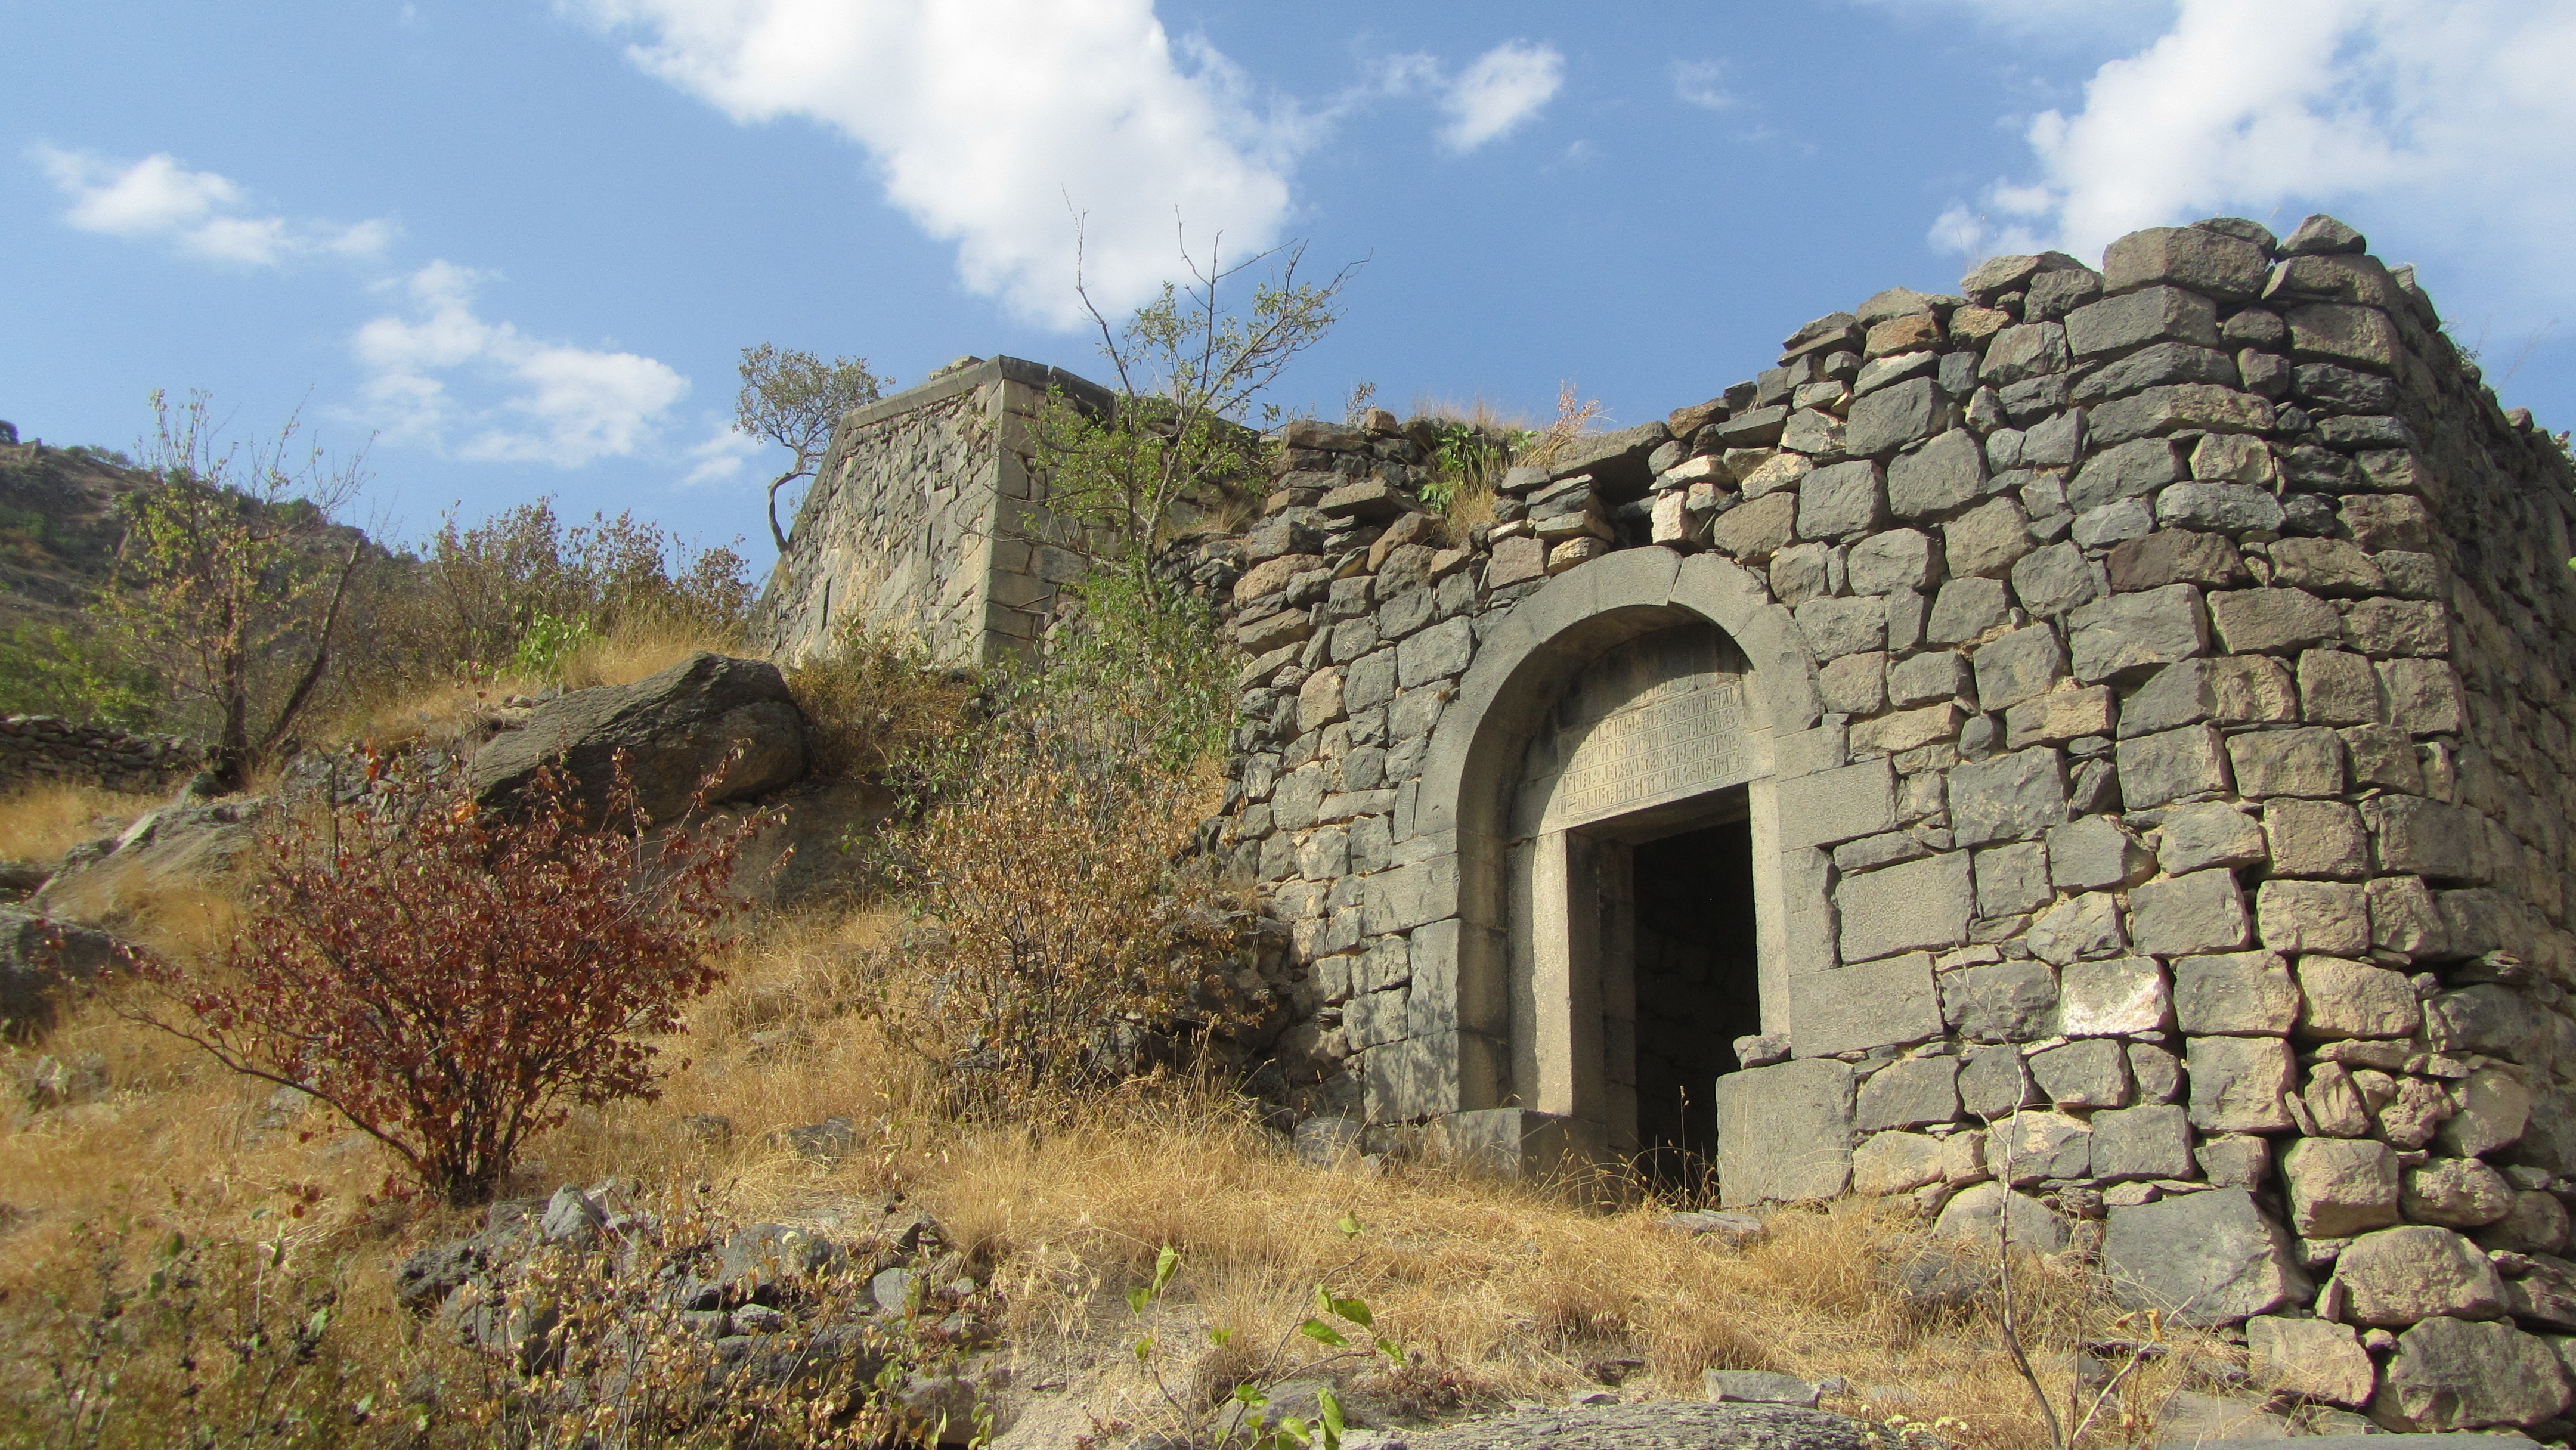 The entrance to the monastery